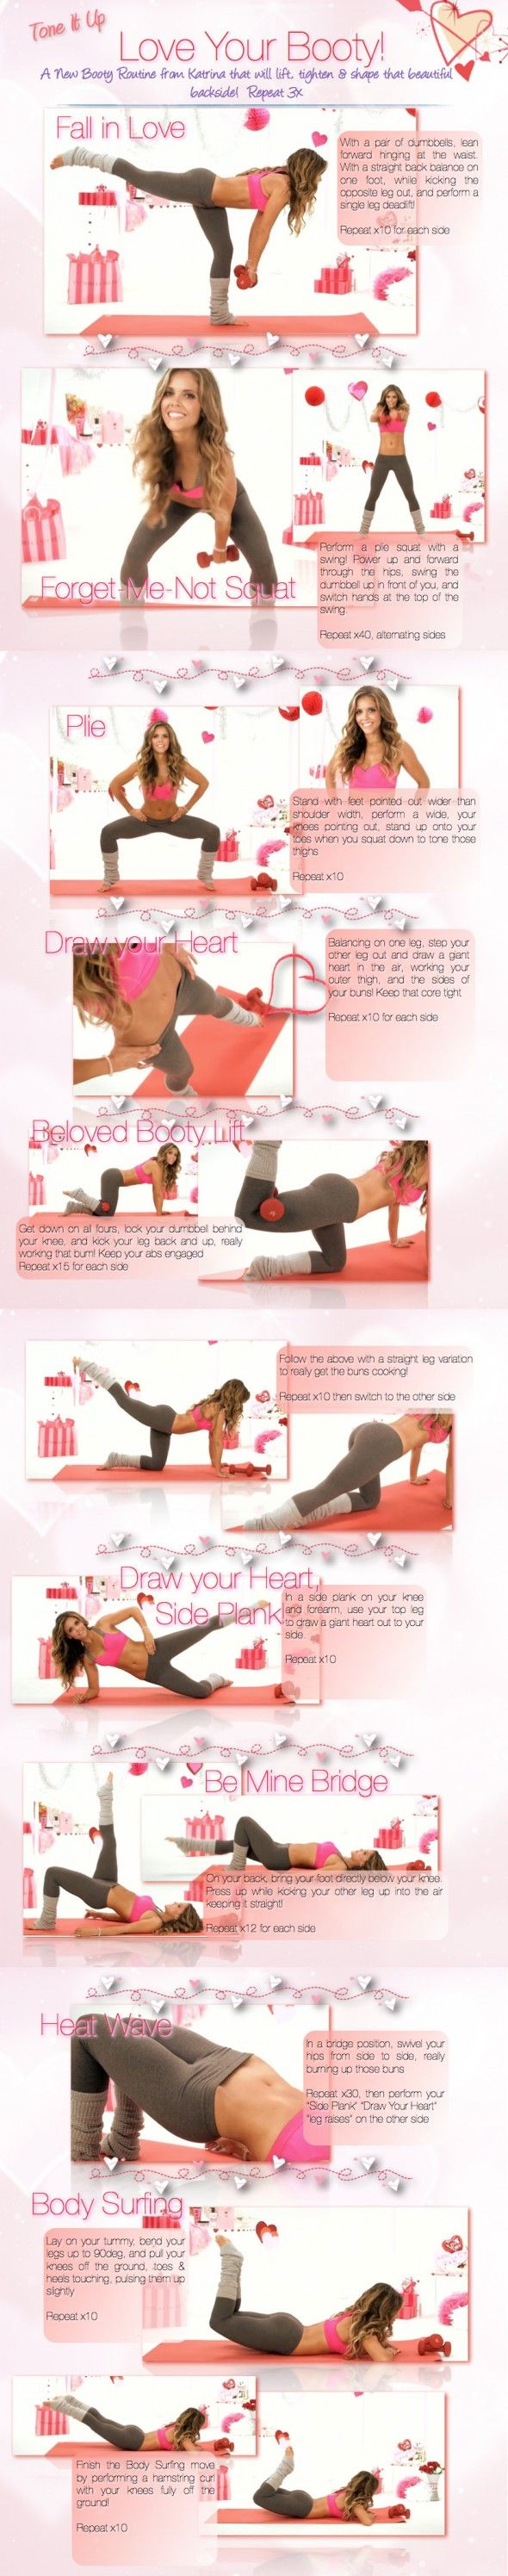 love your booty! these moves will lift & sculpt your butt and tone the thighs. working major muscle groups like your thighs and rear also burns major calories... bonus!